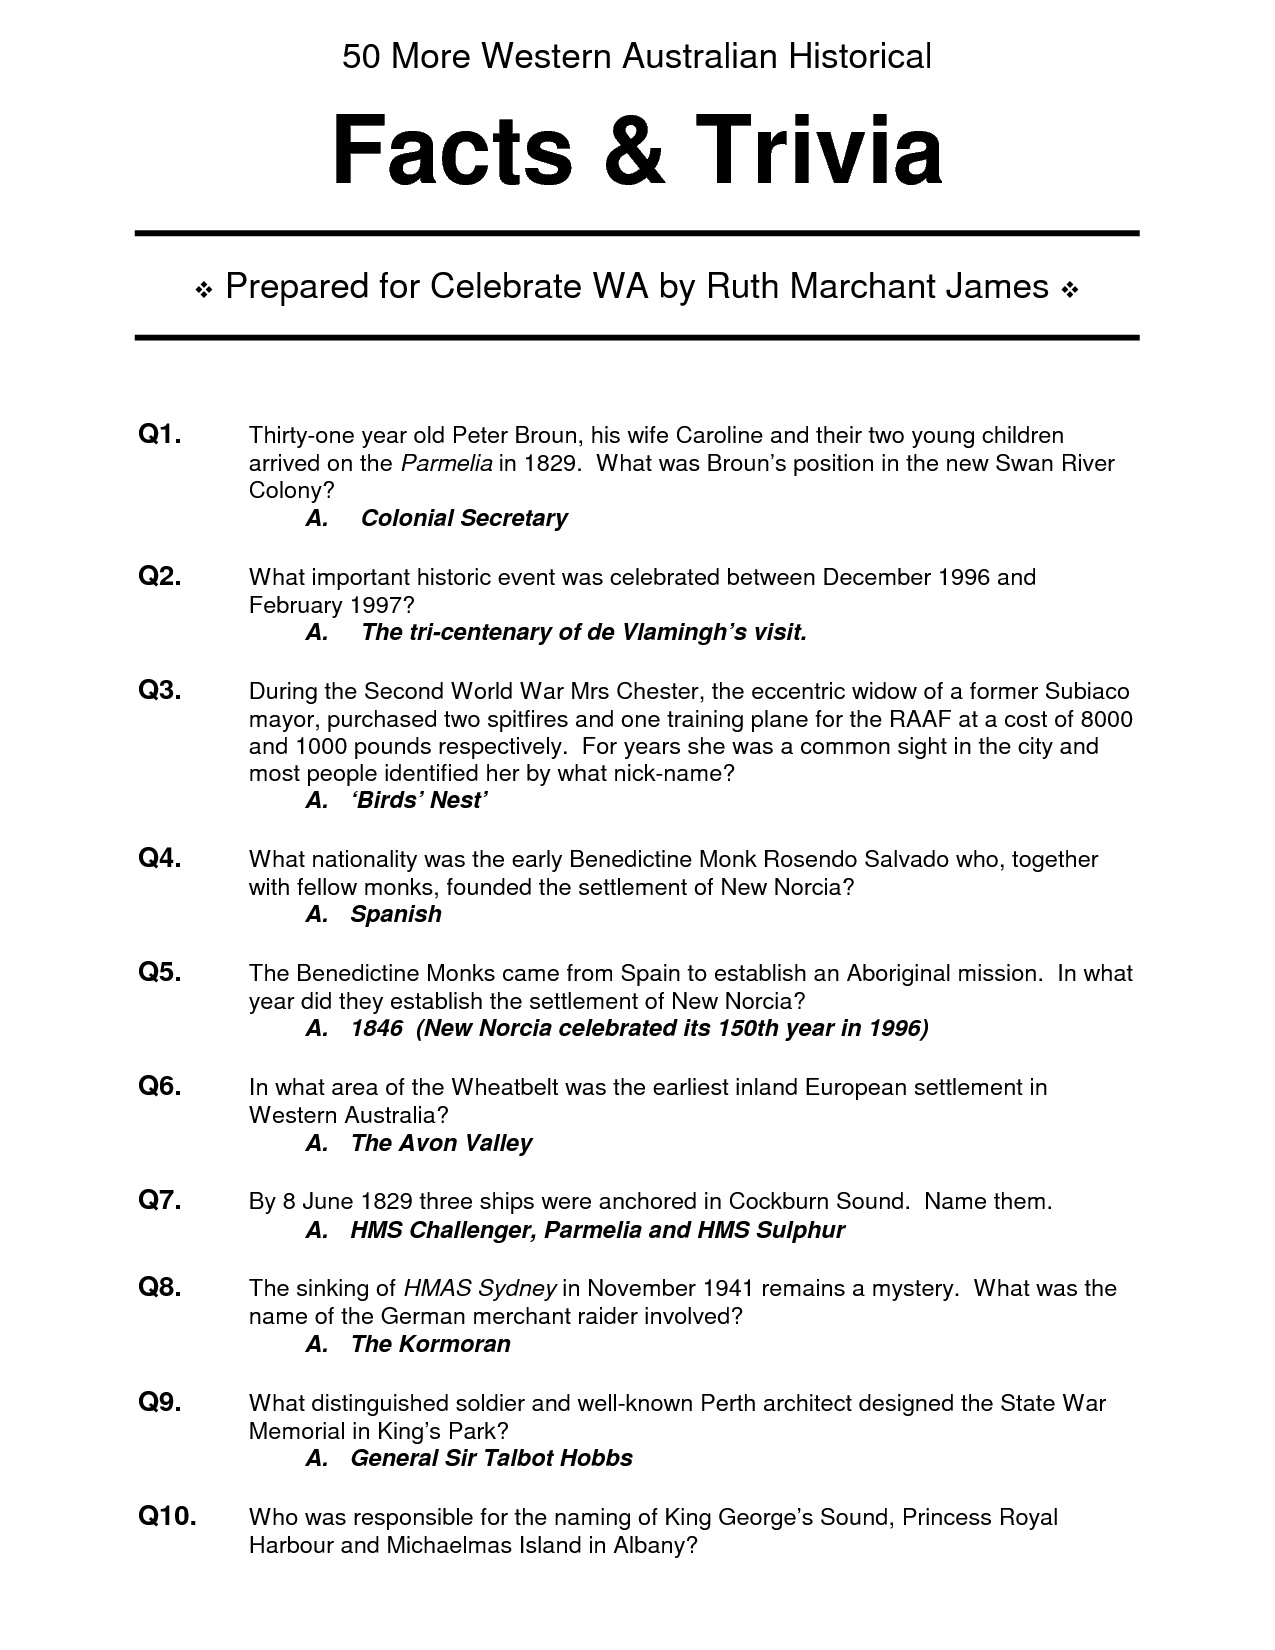 Easy Printable Trivia Questions And Answers For Seniors – Printall - Free Printable Trivia Questions For Seniors